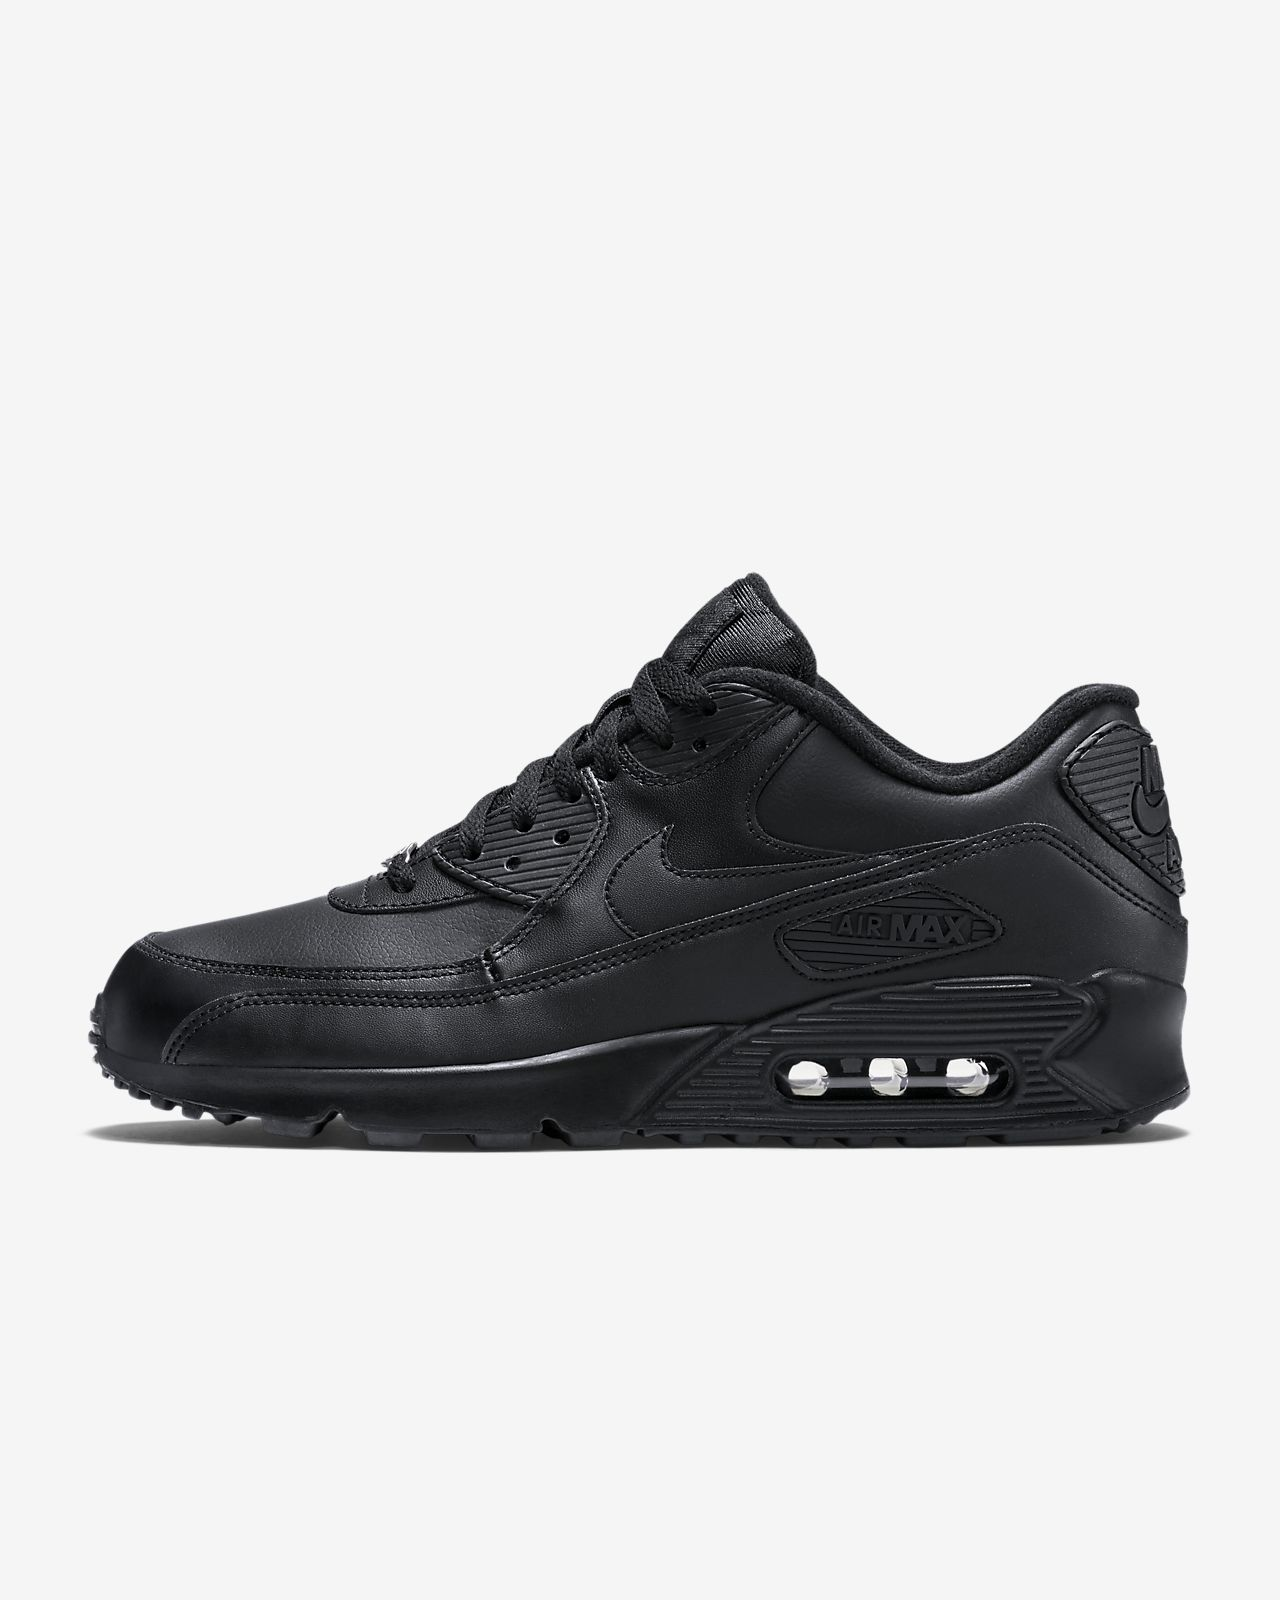 sale retailer 5497d 10776 ... Sko Nike Air Max 90 Leather för män